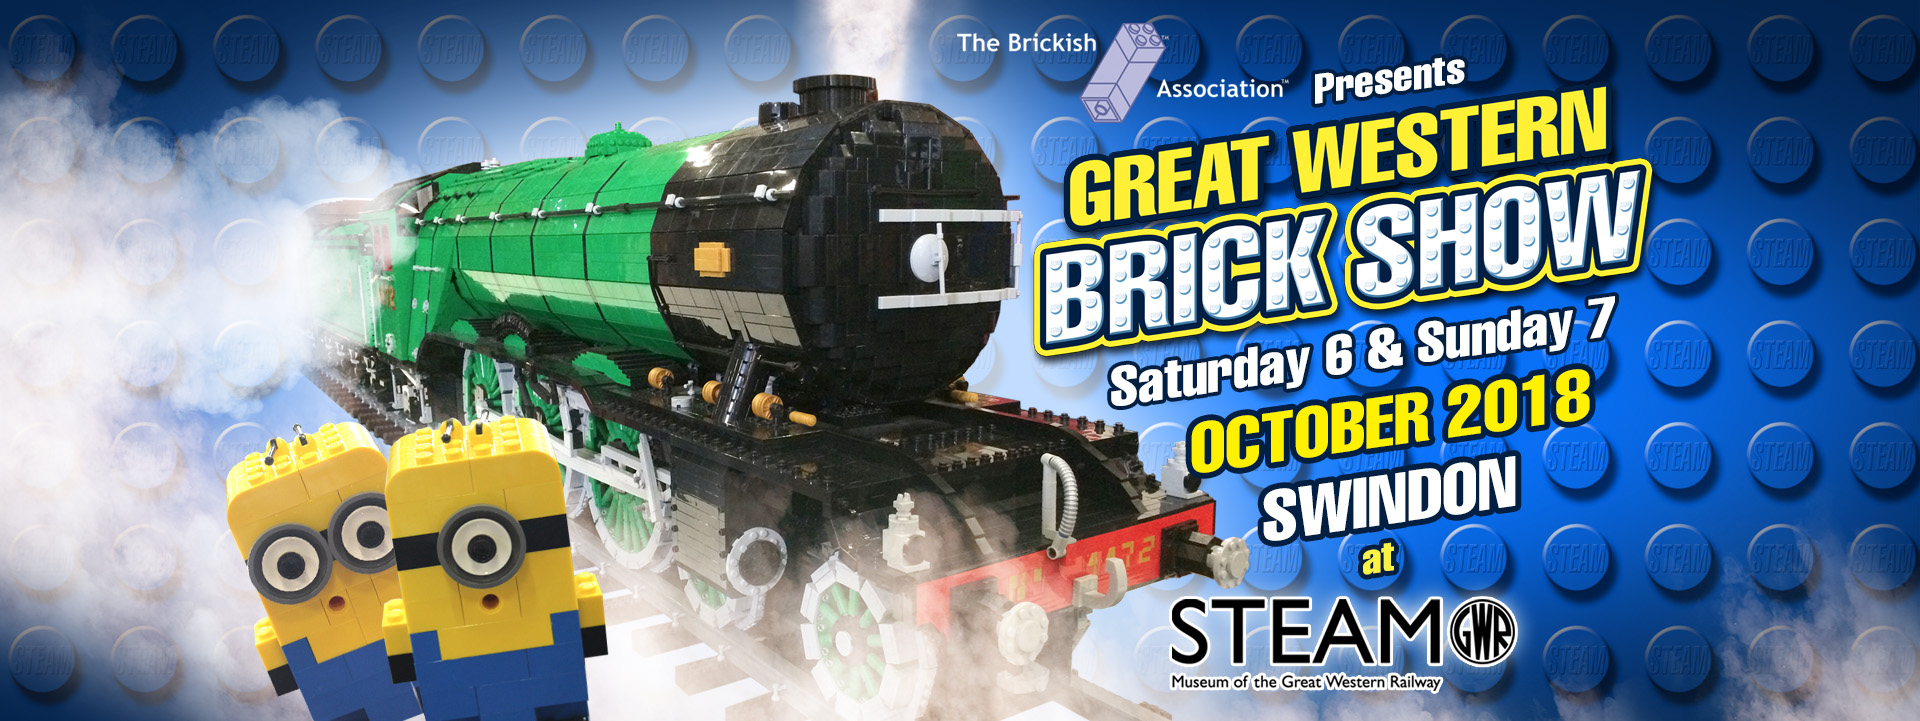 Great Western Brick Show 2018